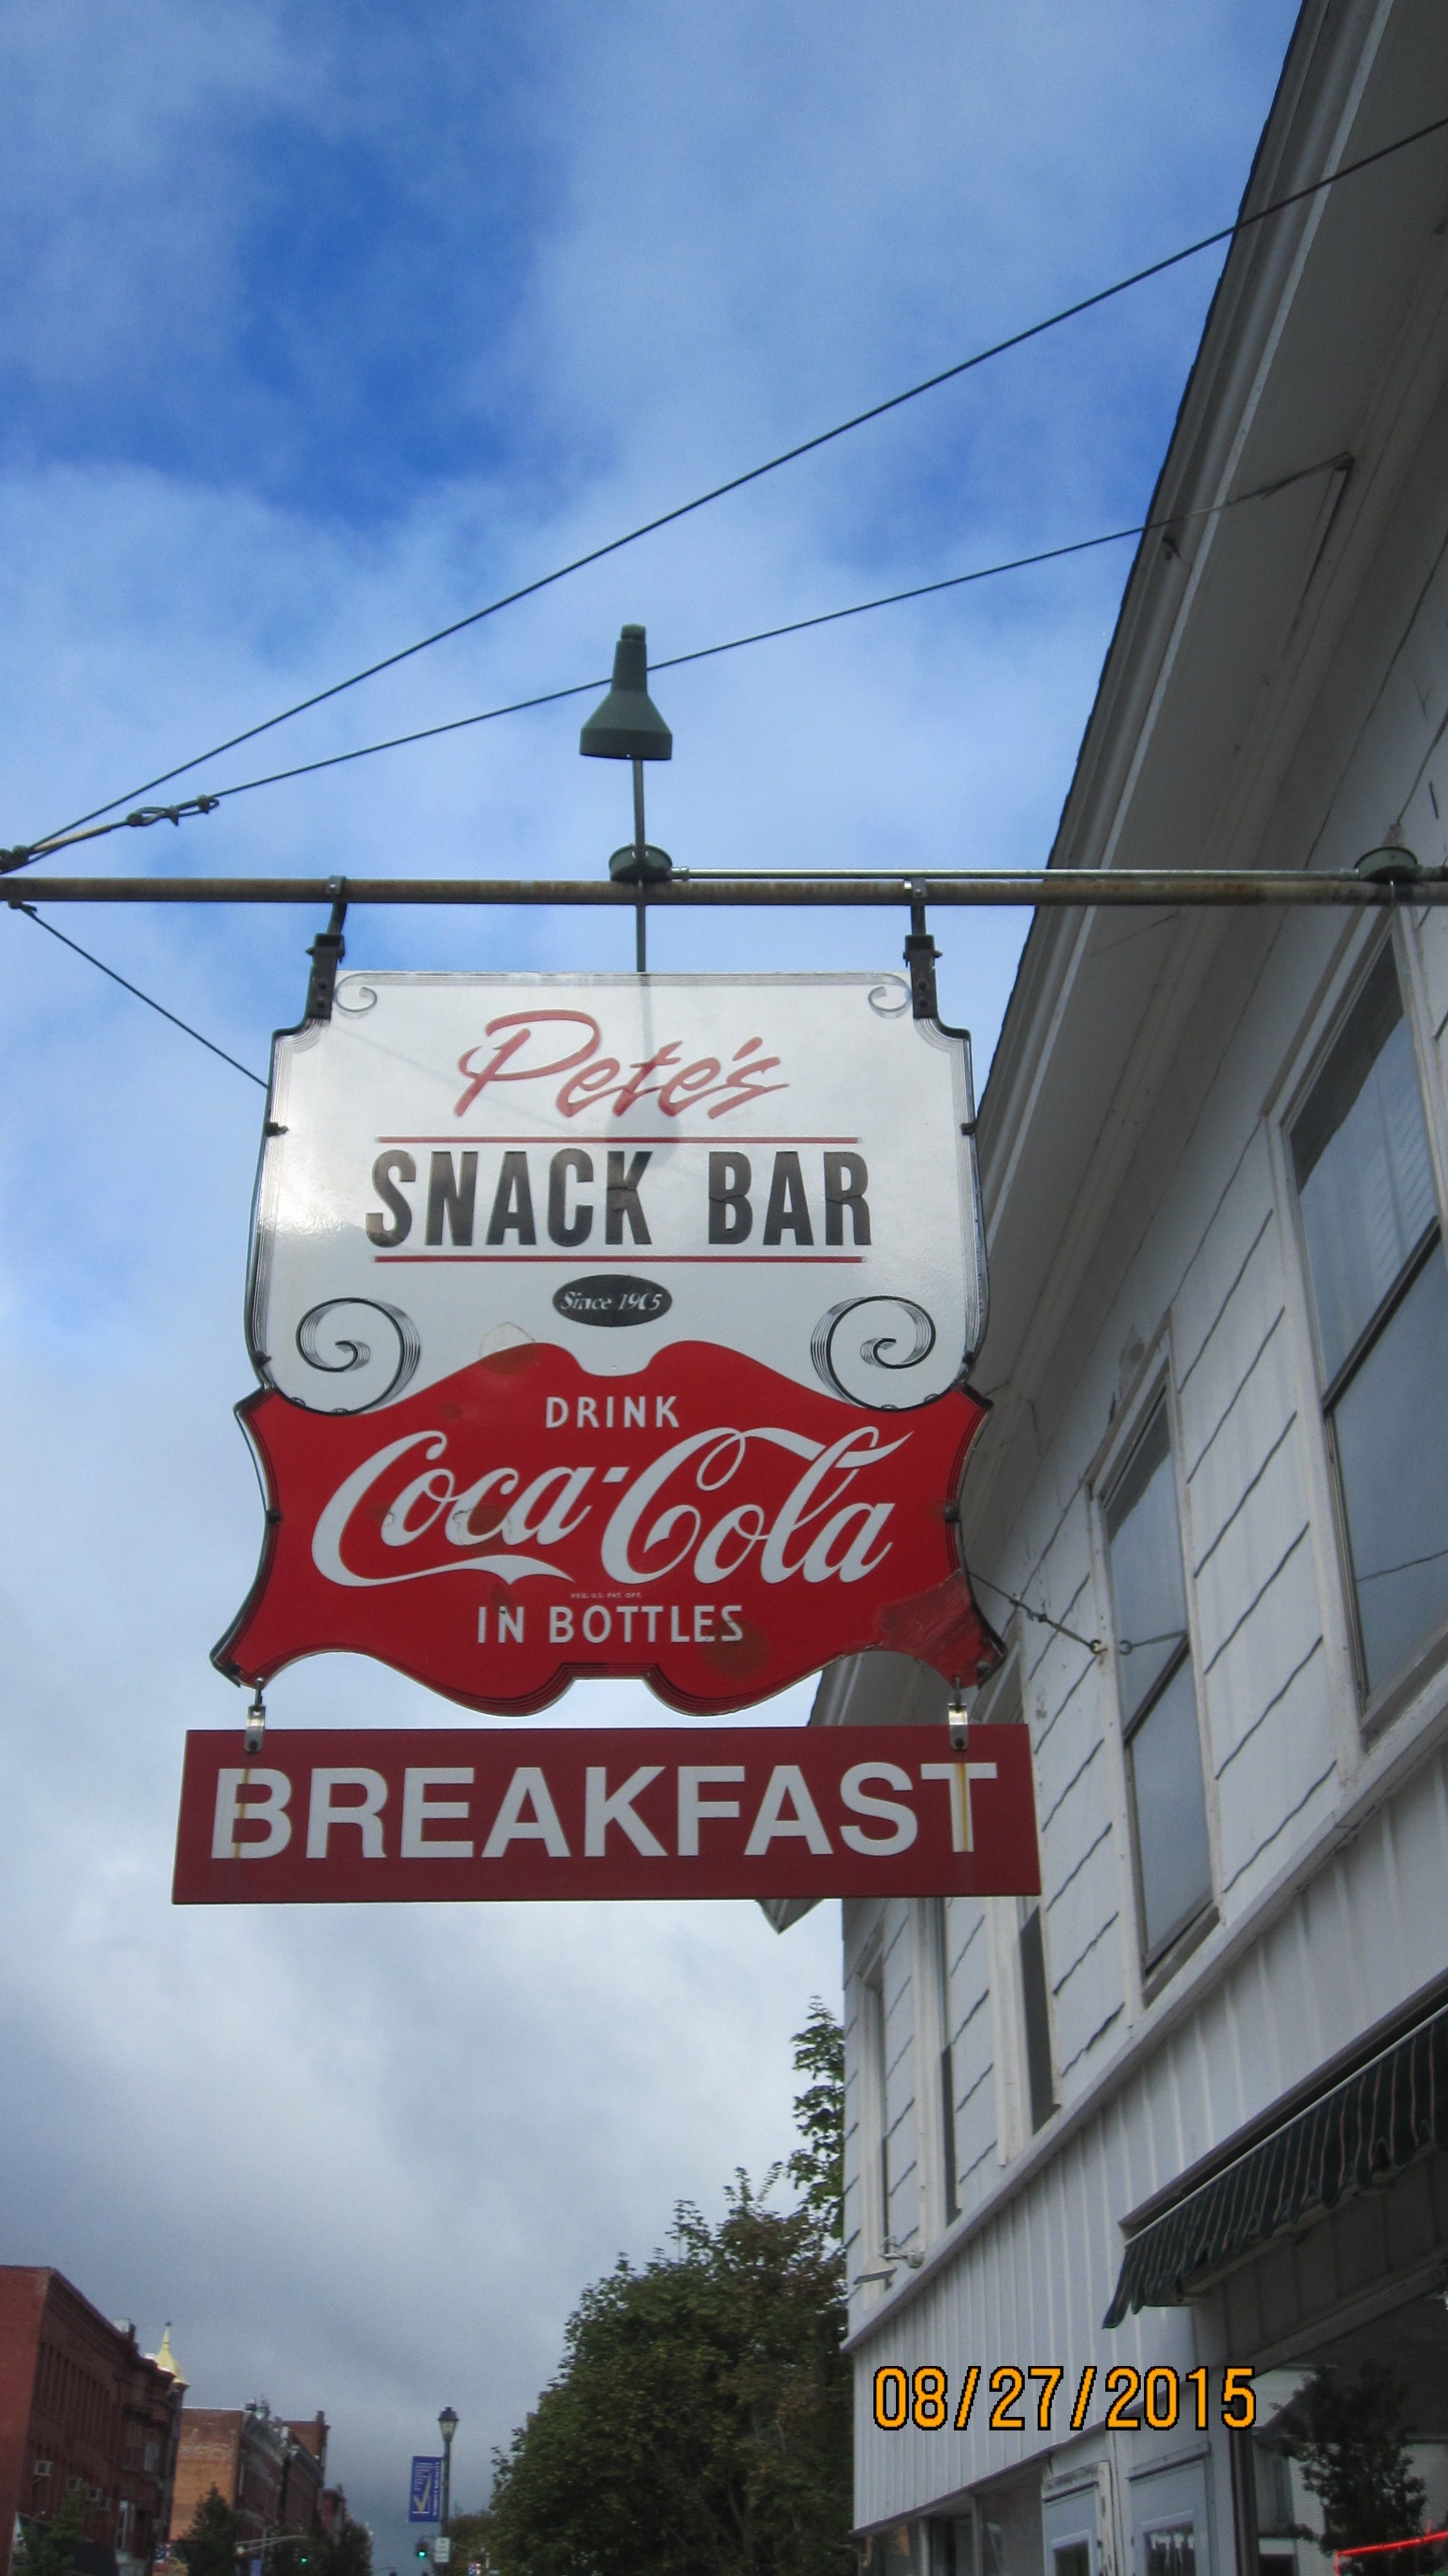 Pete S Snack Bar On Main Street In Johnstown Ny Serving The Area Since 1905